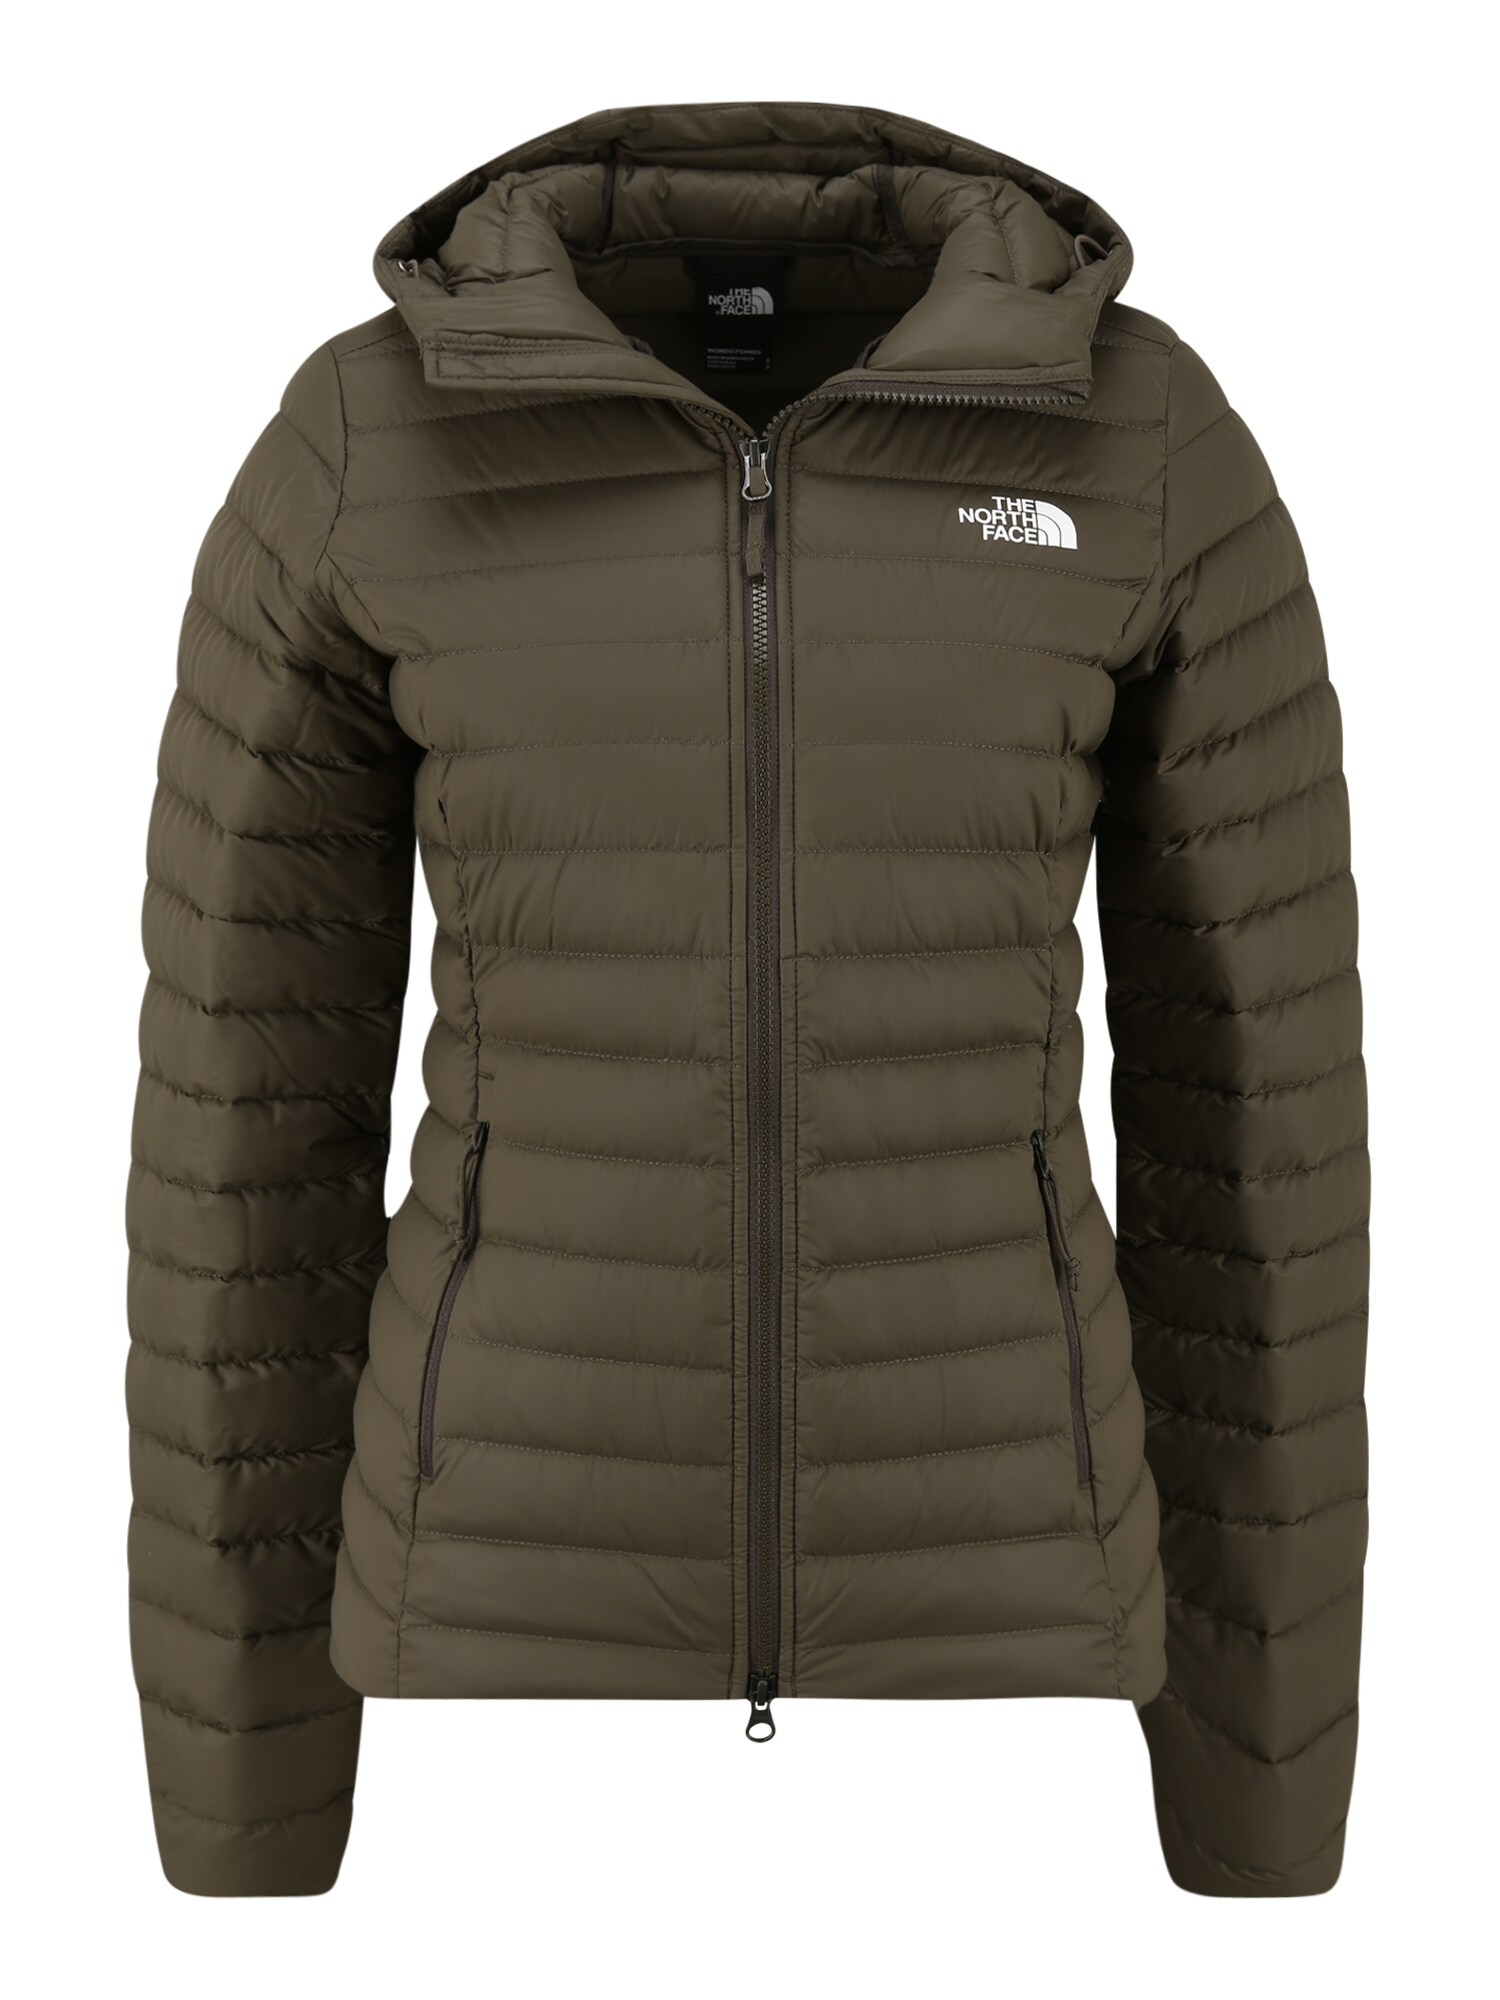 THE NORTH FACE Outdoorová bunda khaki The North Face